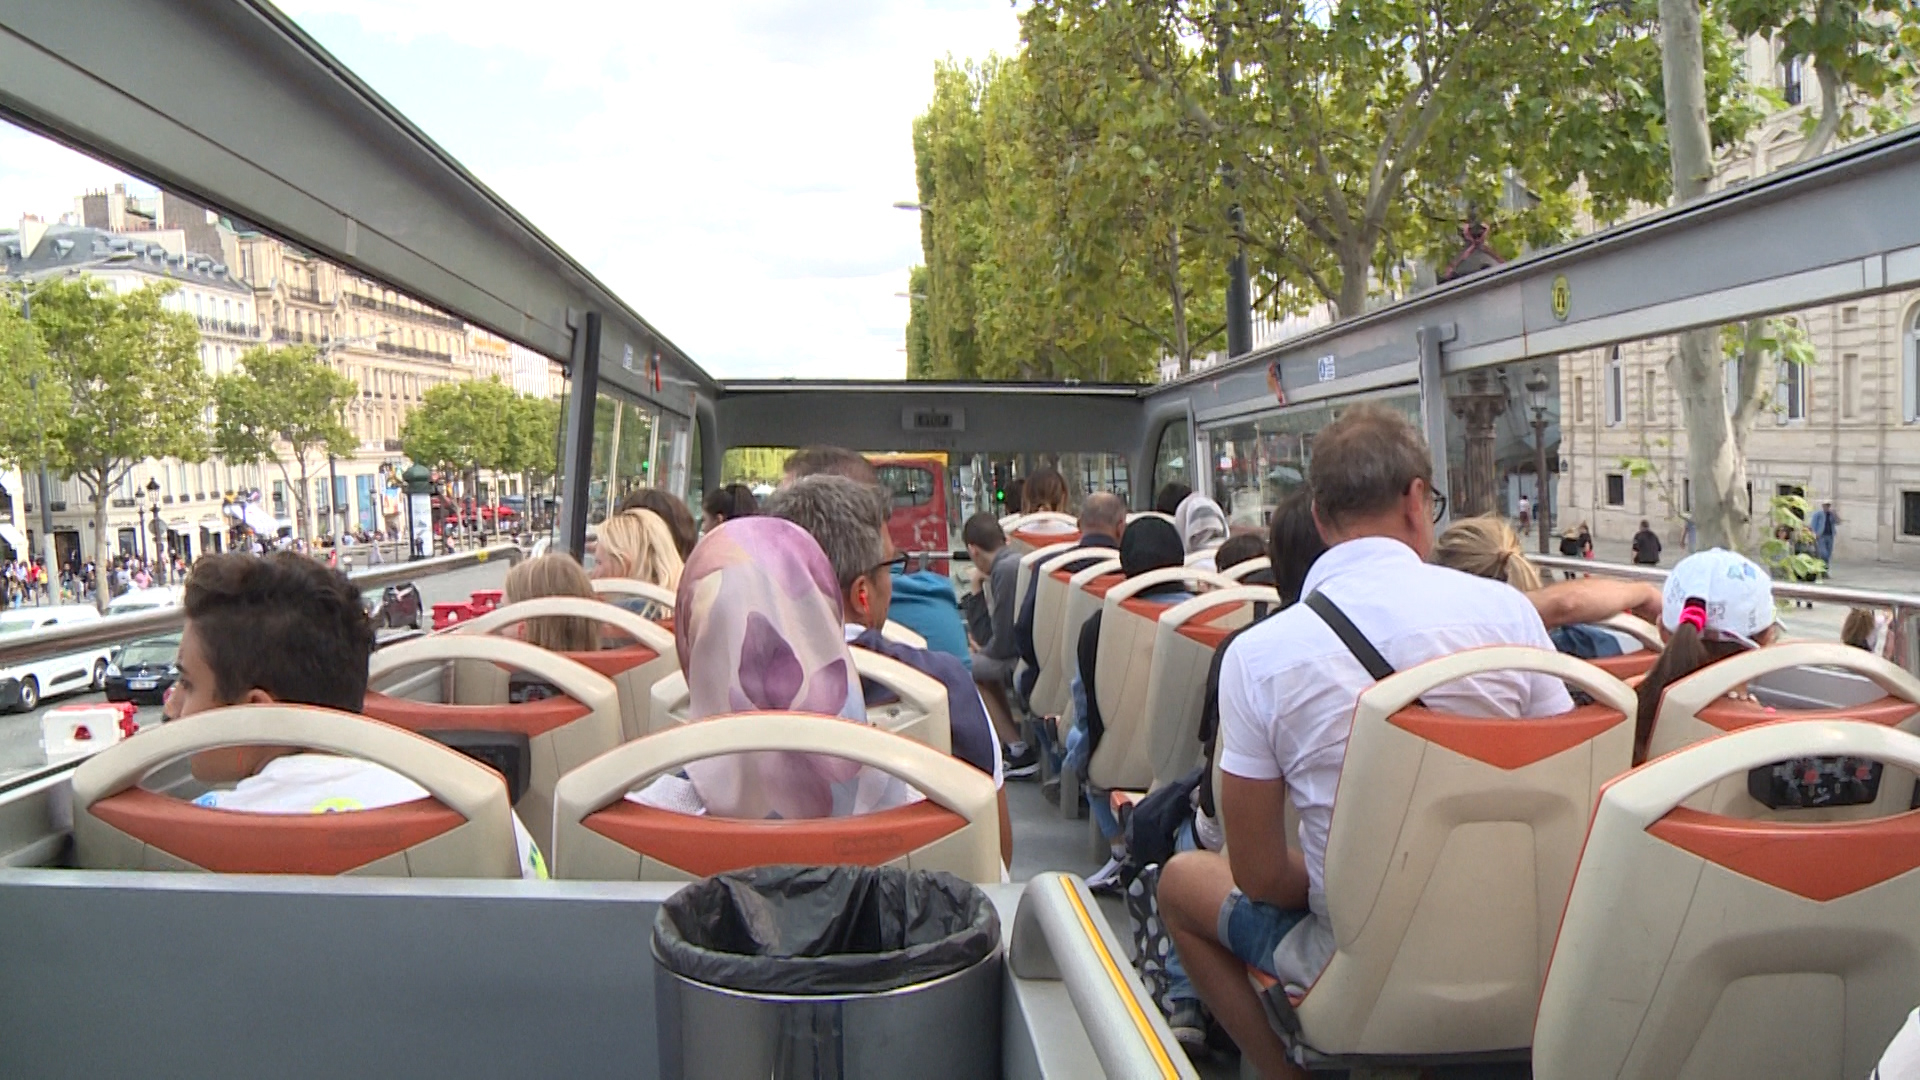 Paris pushes back against tour buses